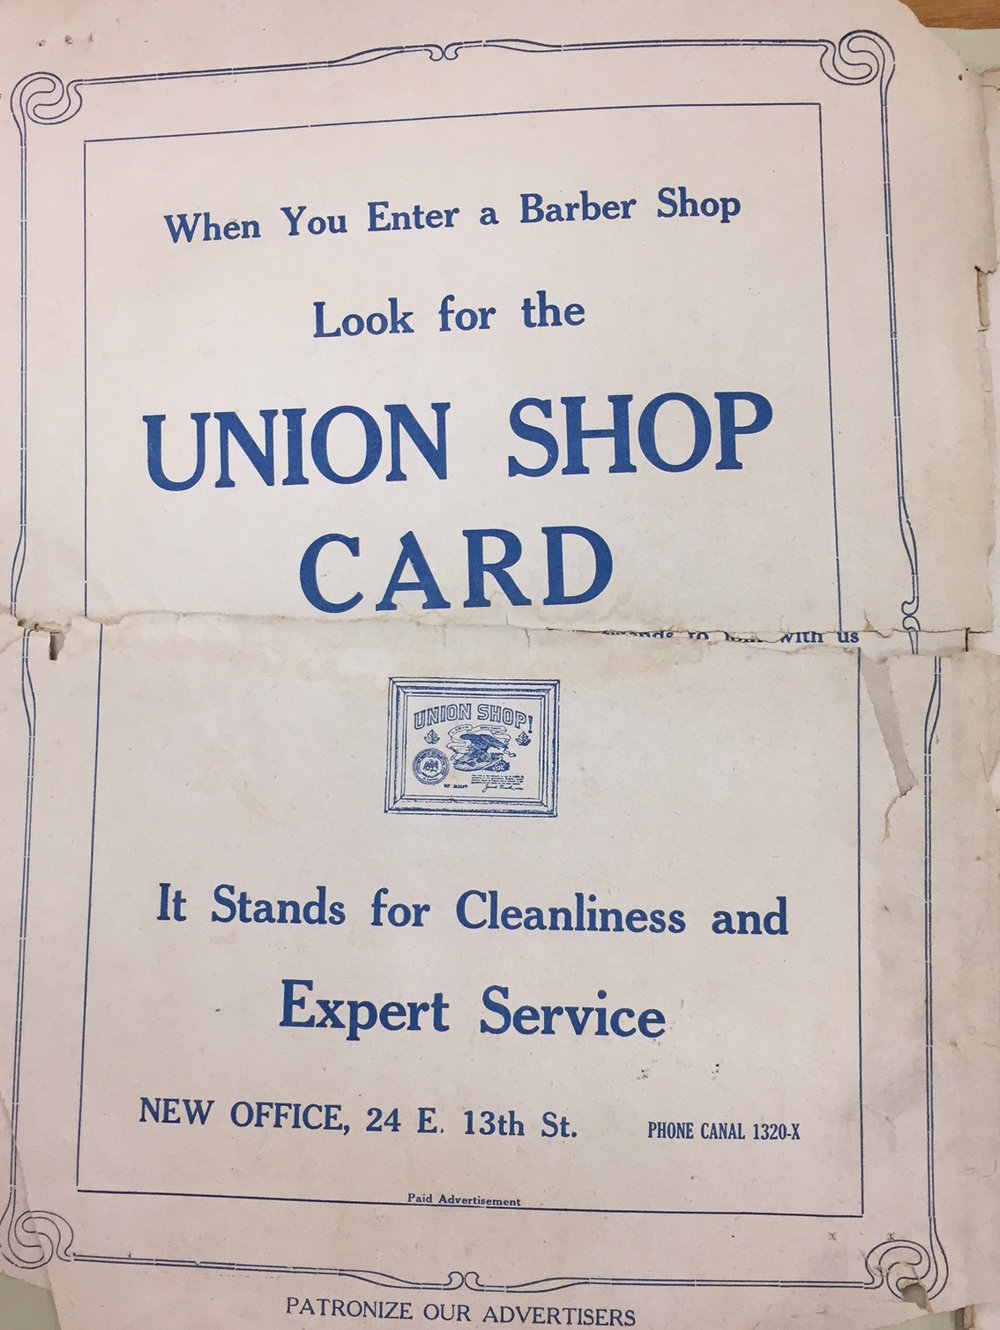 One of the ways that Union shops encouraged customer loyalty. Courtesy of Blegen Library, University of Cincinnati.